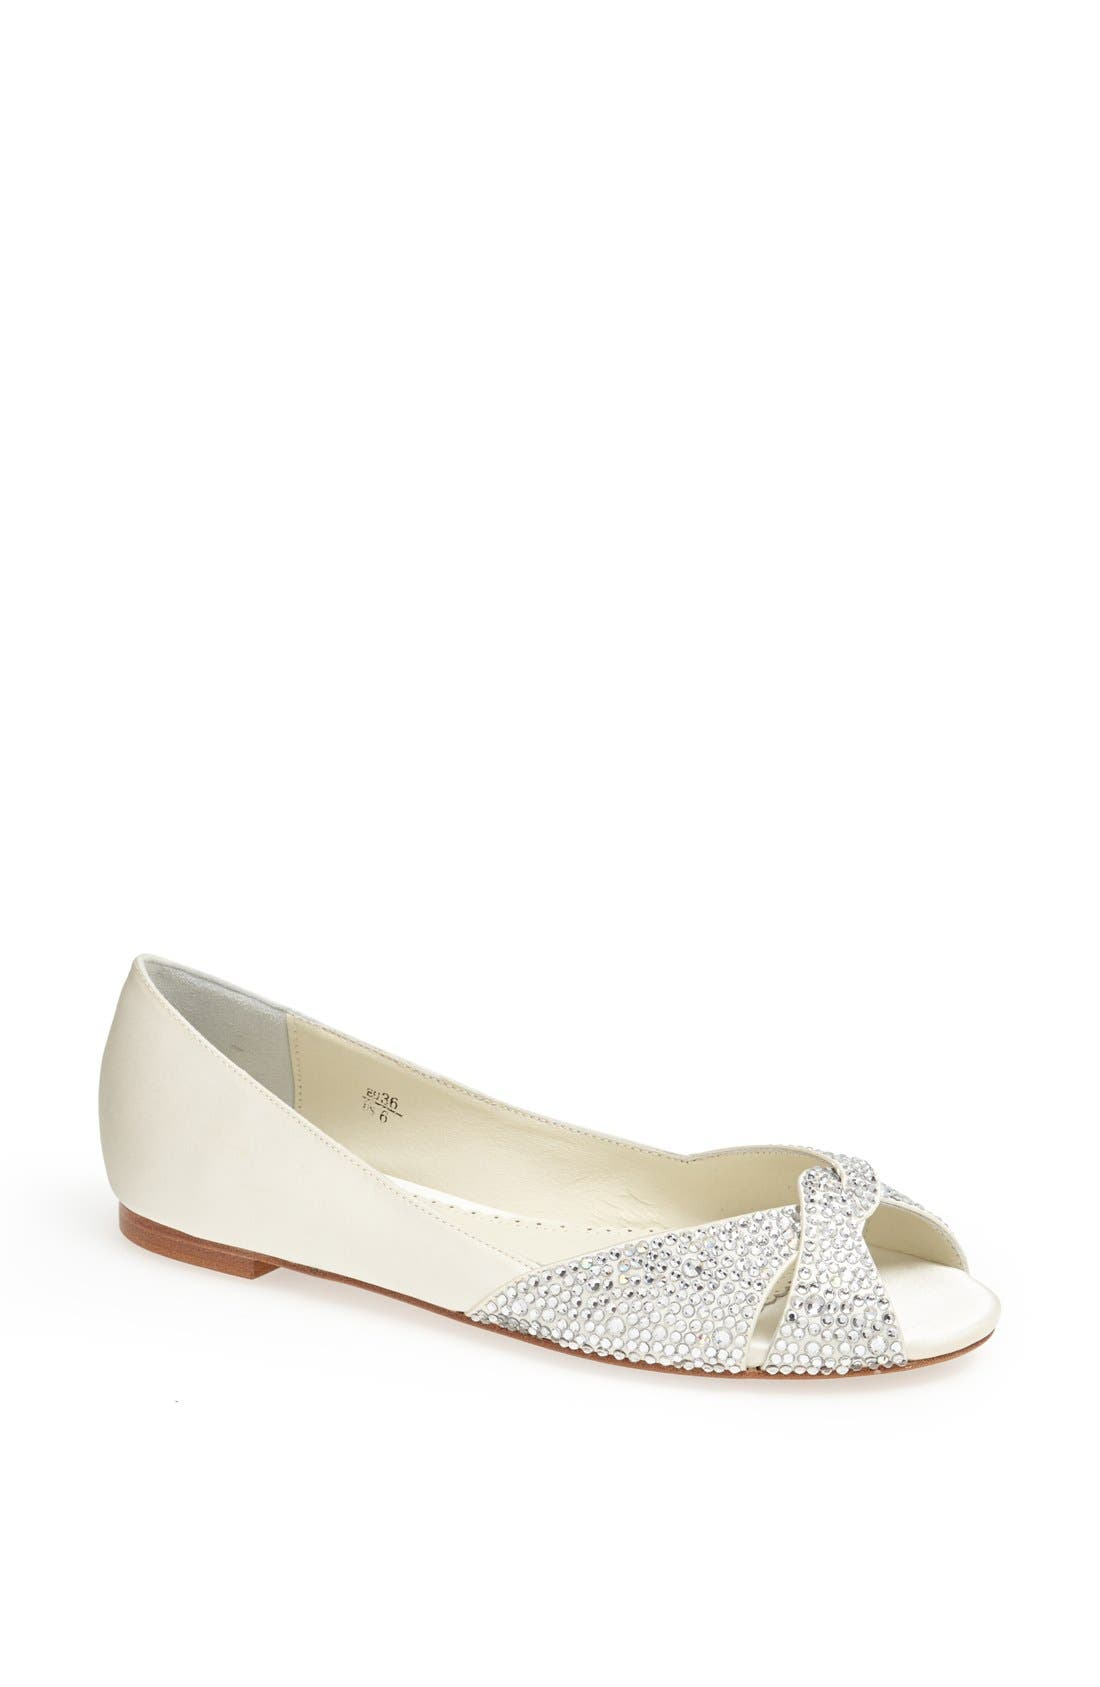 'Andie' Crystal Embellished Peep Toe Flat,                         Main,                         color, 900